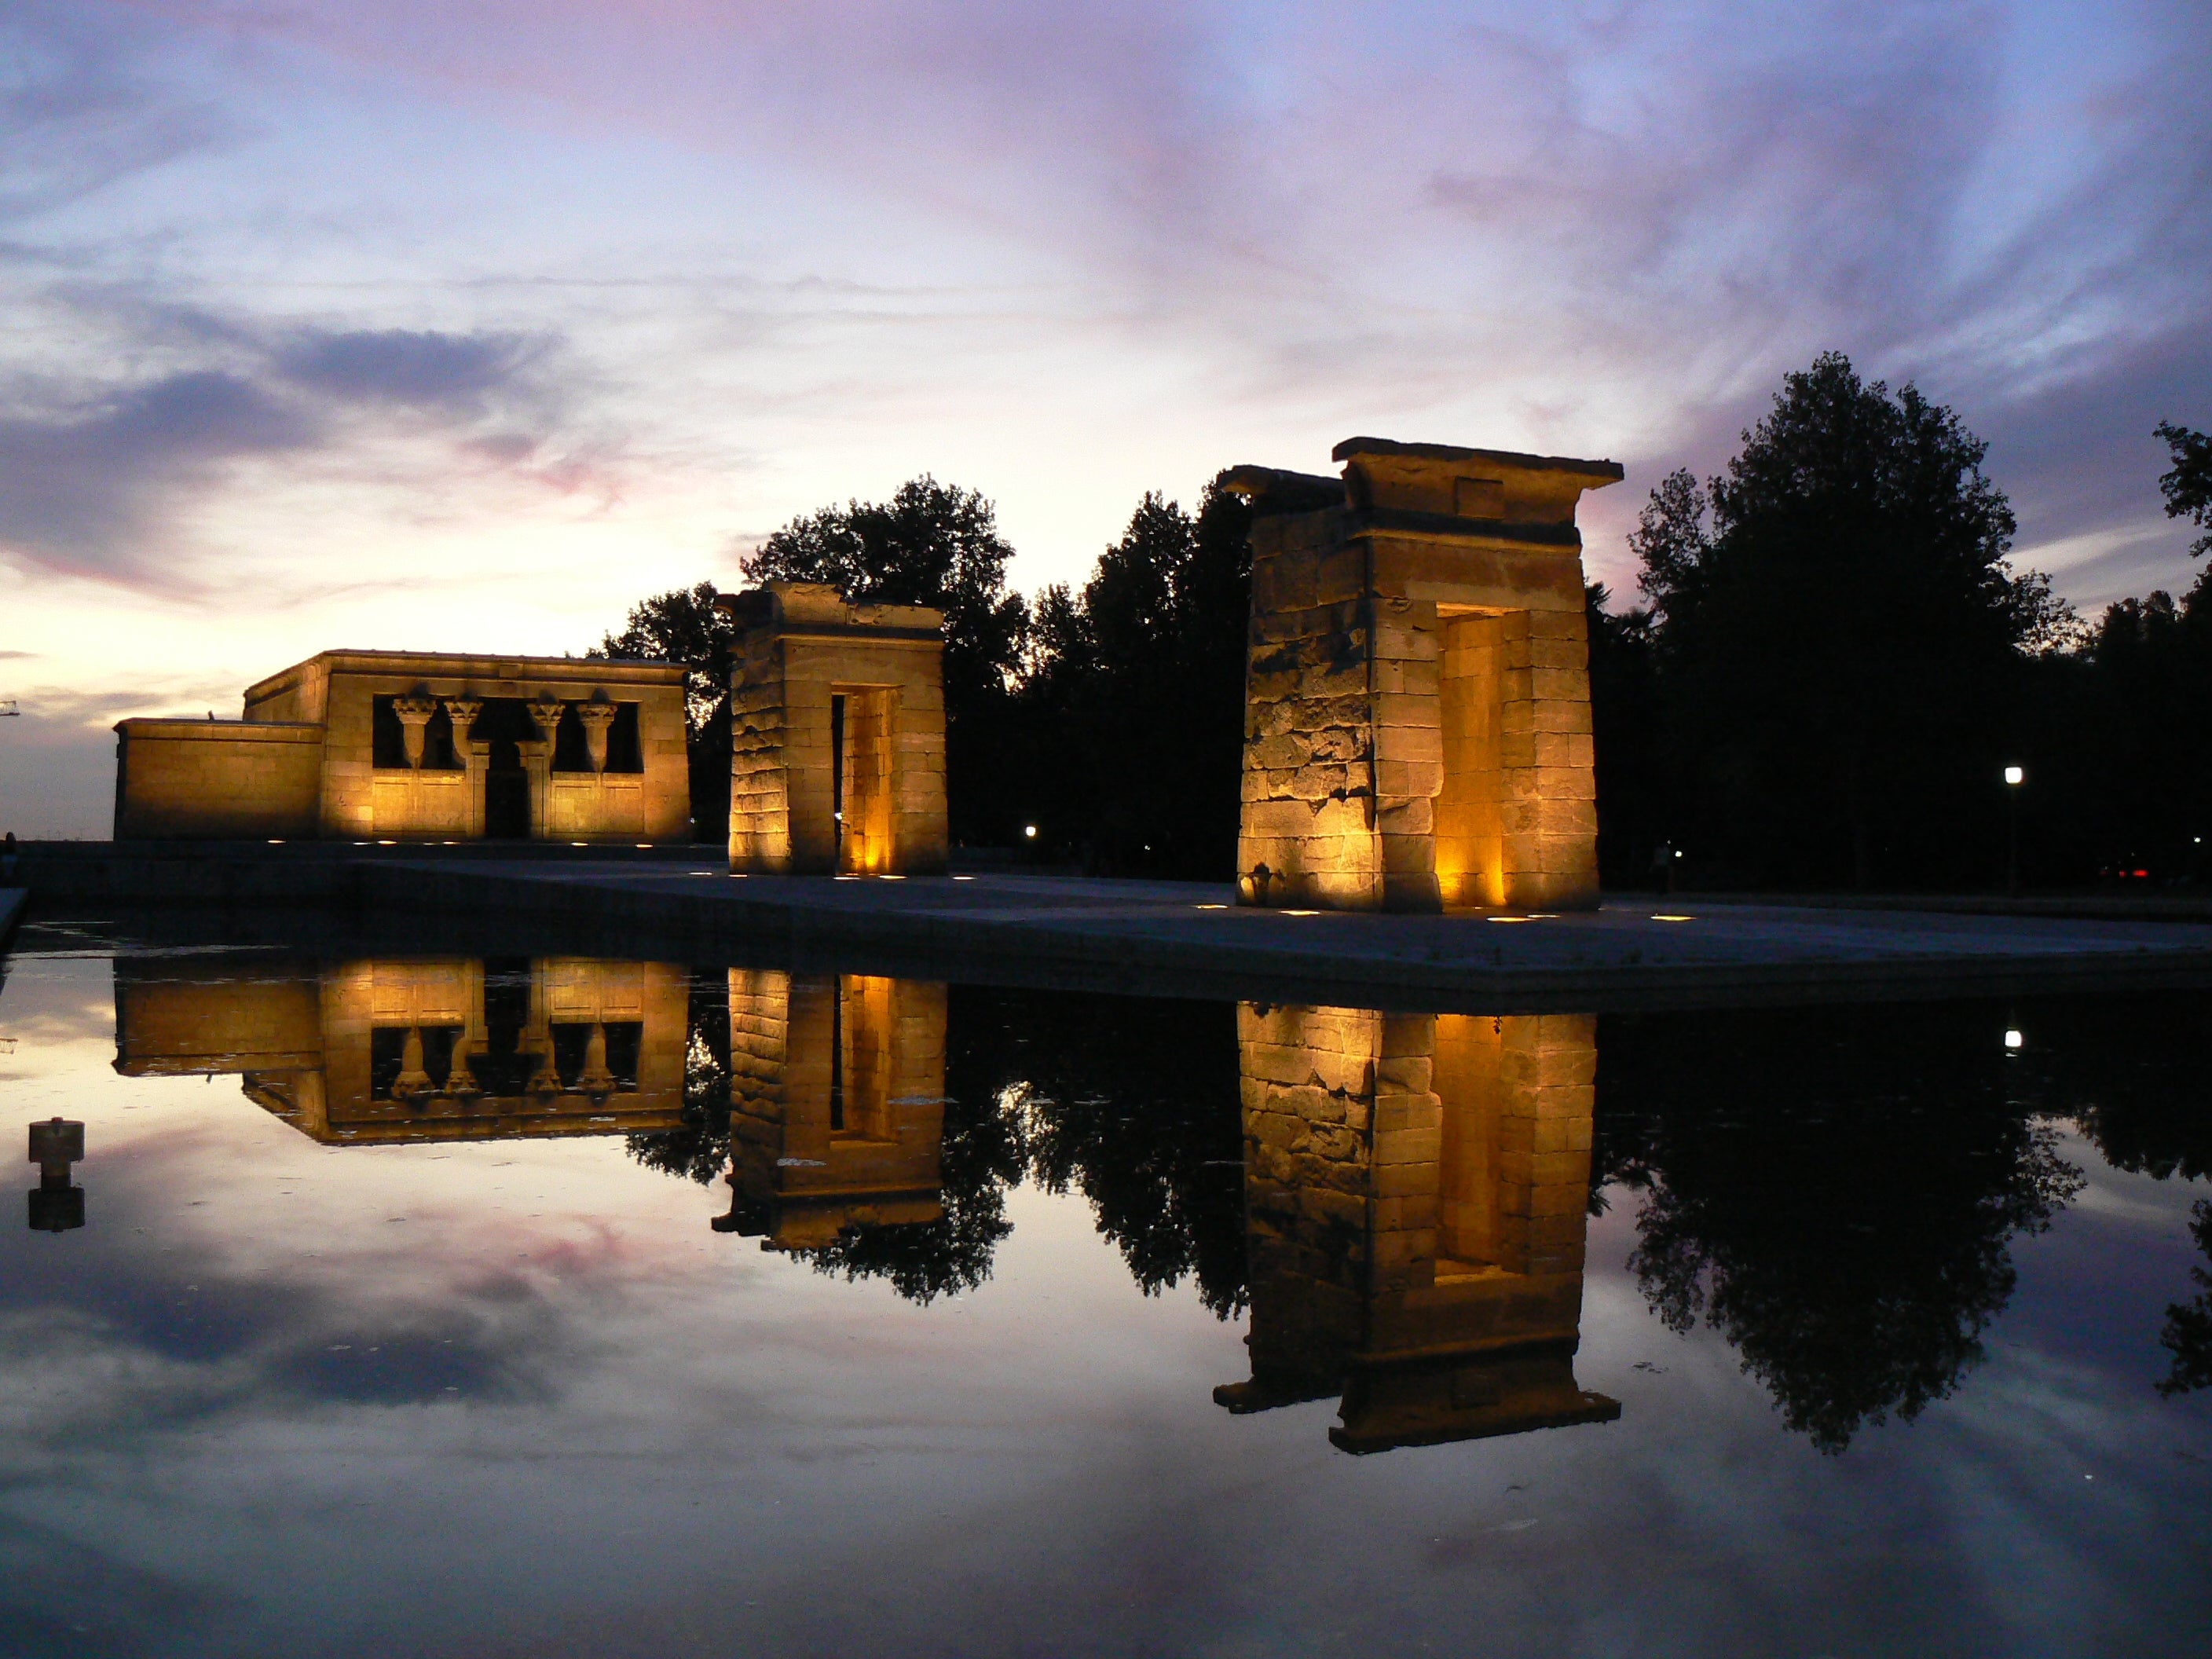 Transport in Temple of Debod